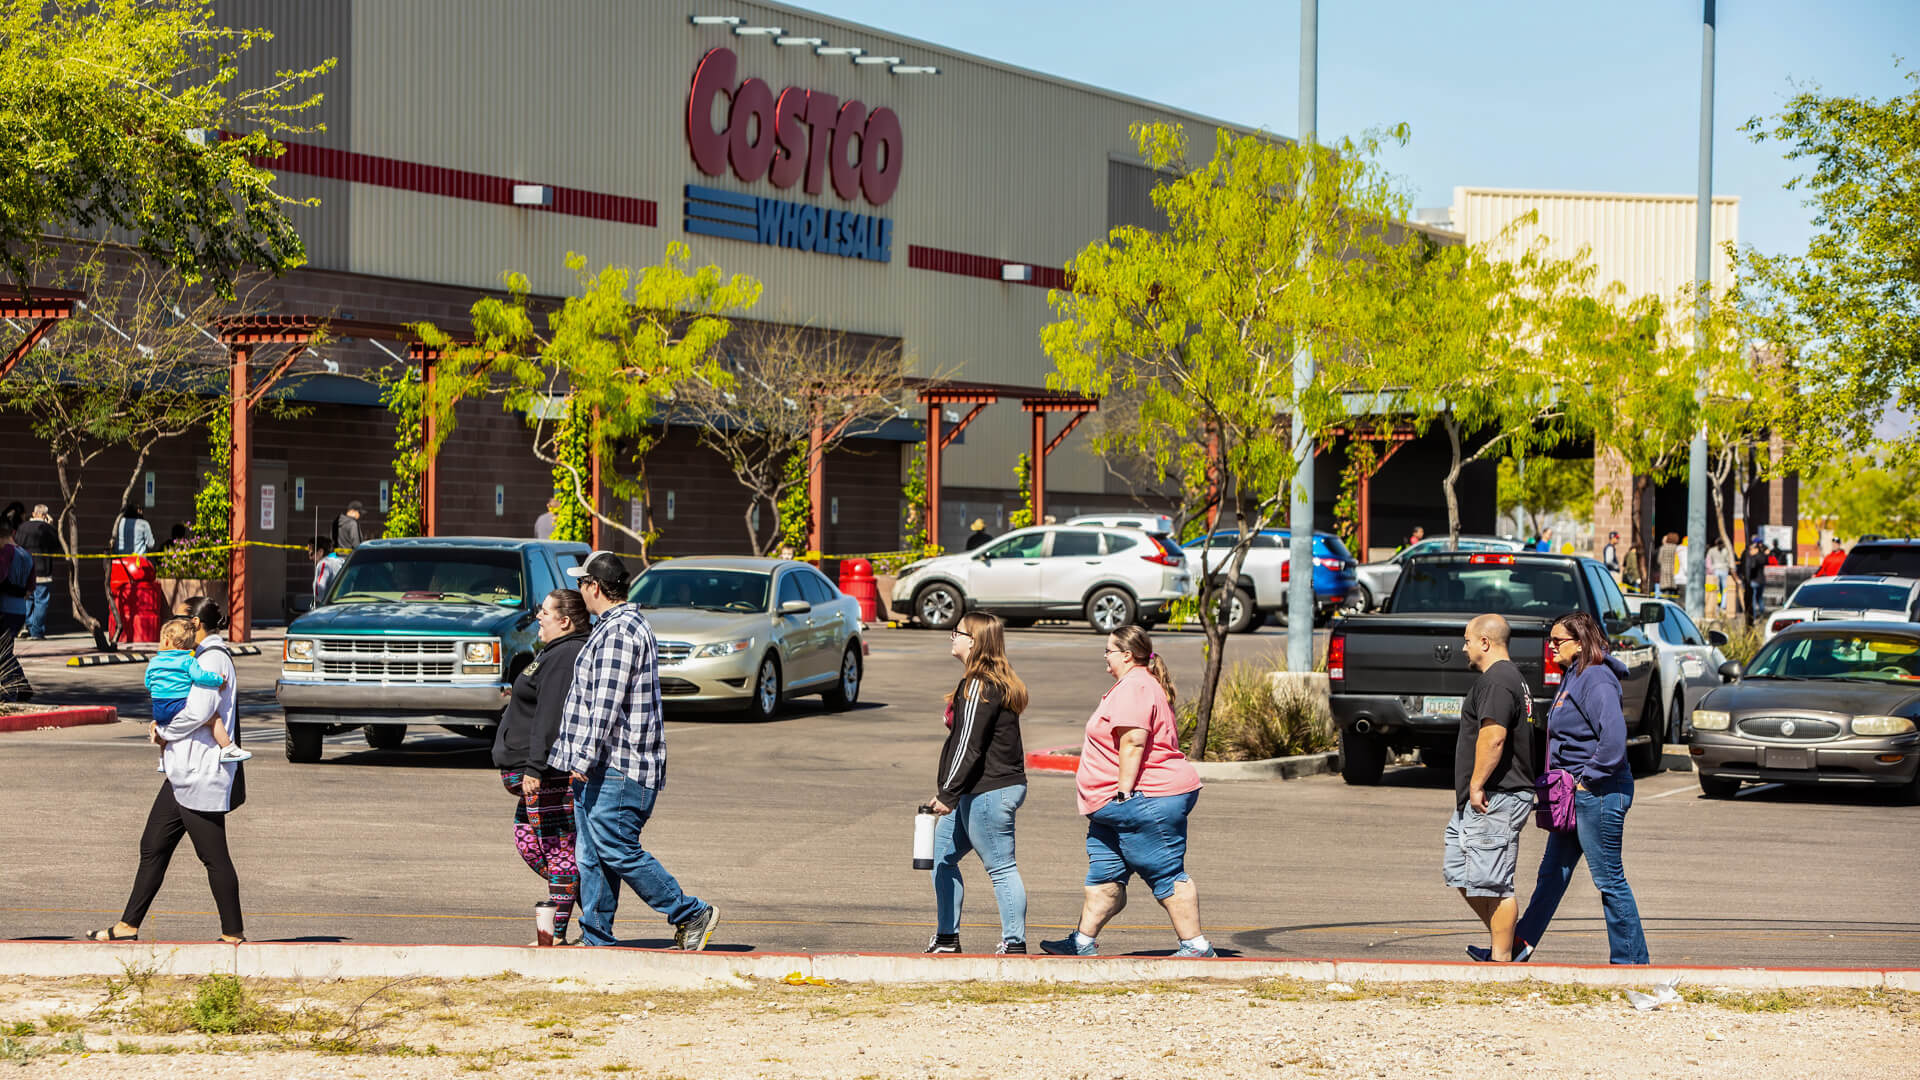 TUCSON, UNITED STATES - March 29: Shoppers practicing social distancing lined up outside Costco store in Tucson during the coronavirus pandemic.